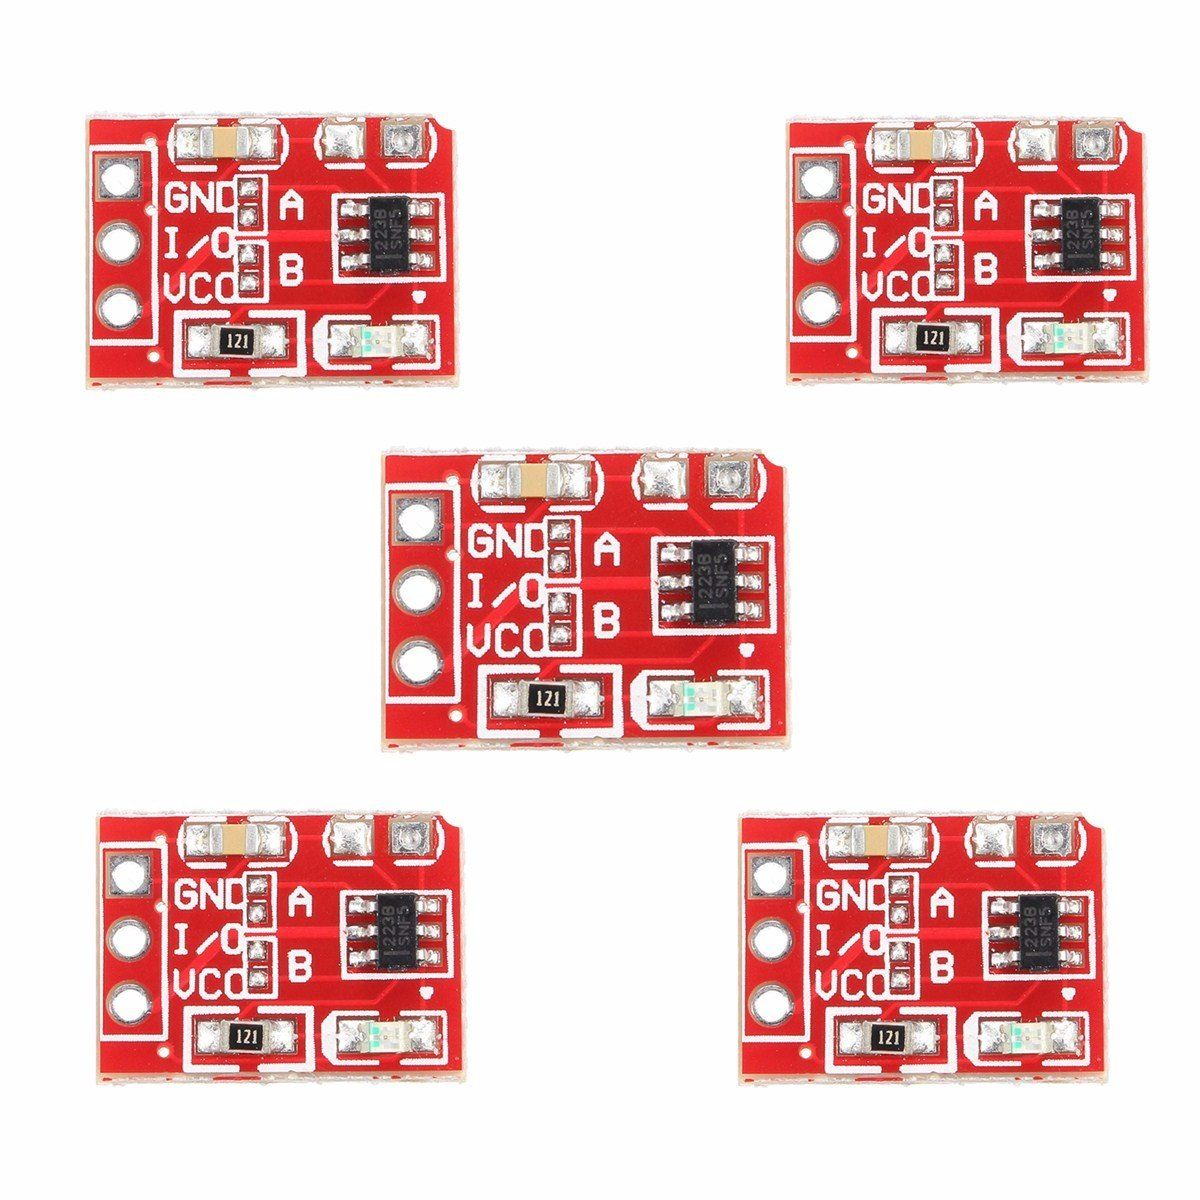 Ttp223 Touch Key Switch Module Touching Button Capacitive Switches Self-locking/no-locking Jog 2.5-5.5v 10pcs Discounts Sale Lights & Lighting Lighting Accessories